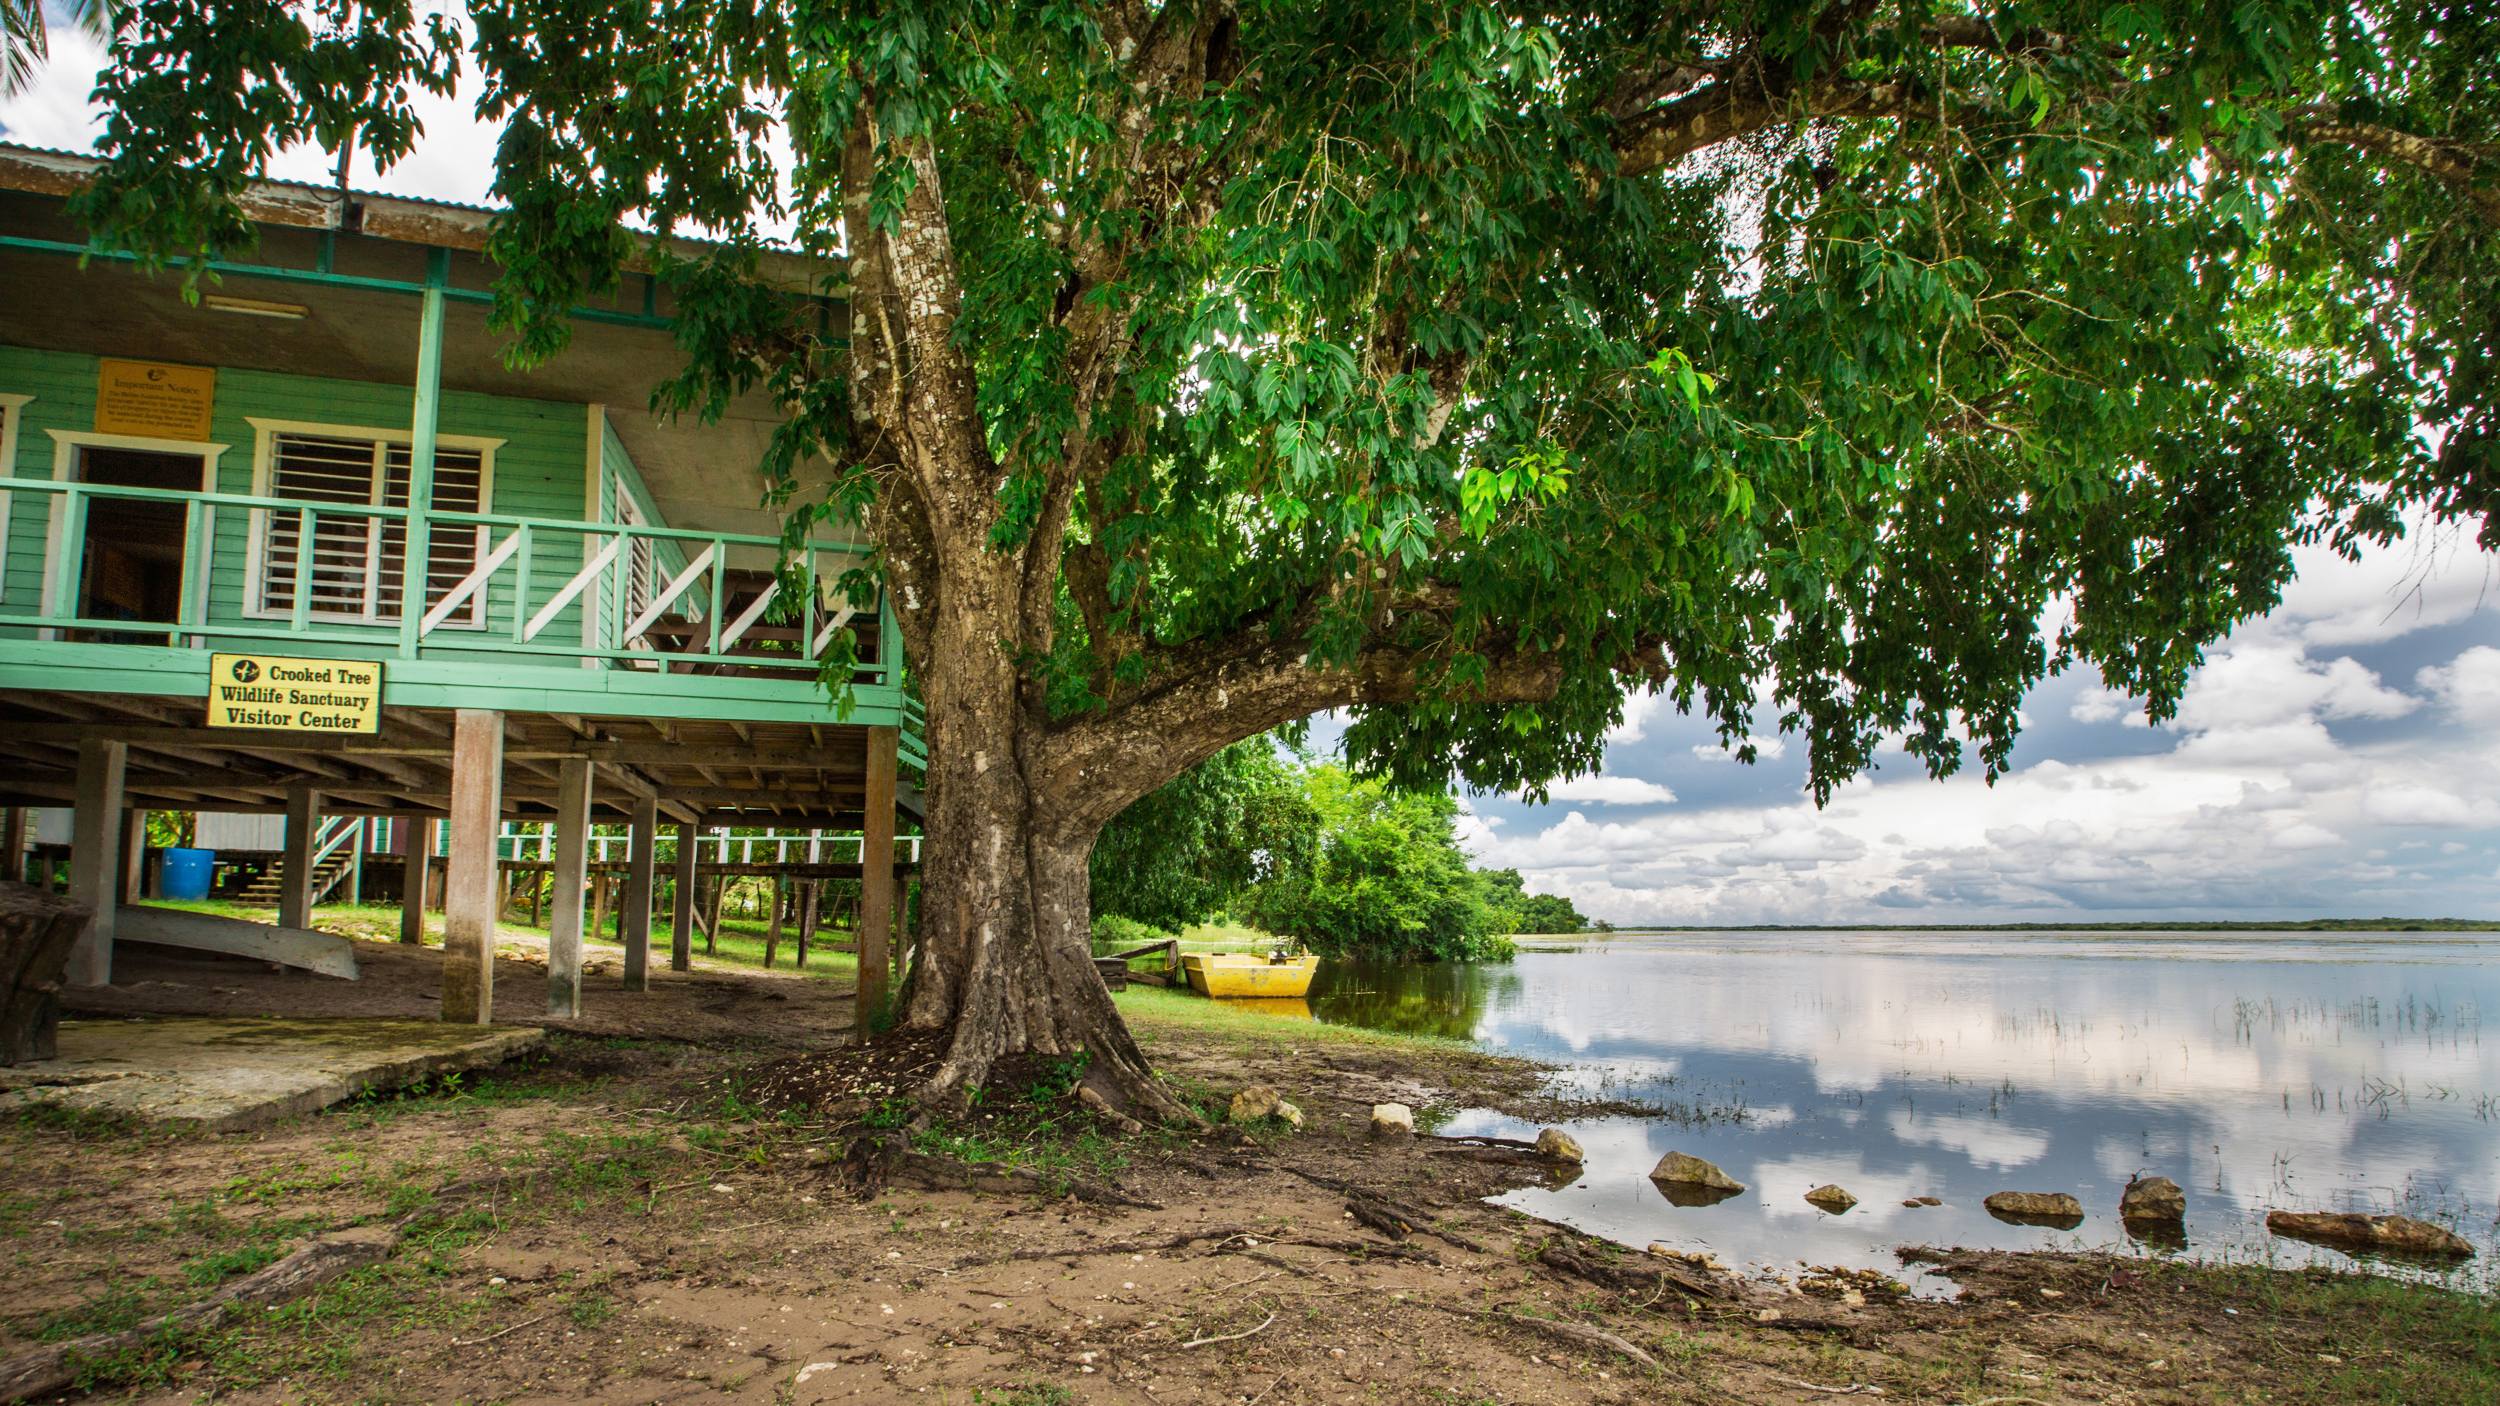 The Crooked Tree Visitor Center, which served as a base for the Belize Audubon Society and sanctuary rangers, prior to the fire. Tony Rath